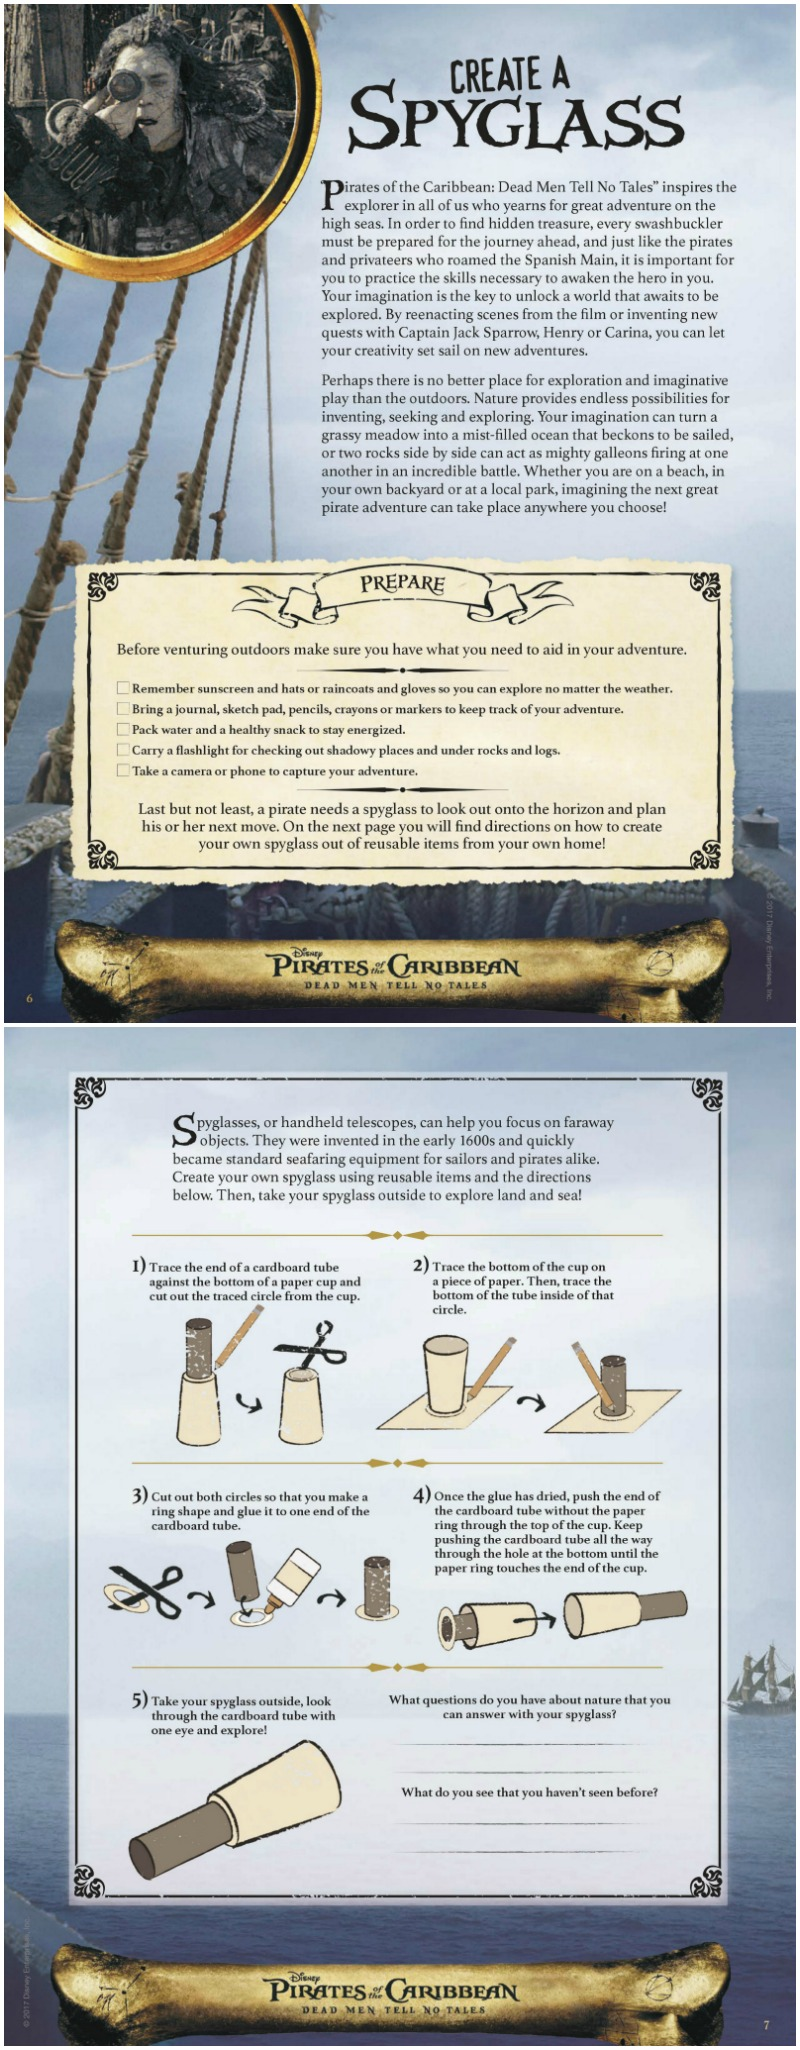 Disney Pirate Spyglass Craft with Printable Instructions - Pirates of the Caribbean Dead Men Tell No Tales